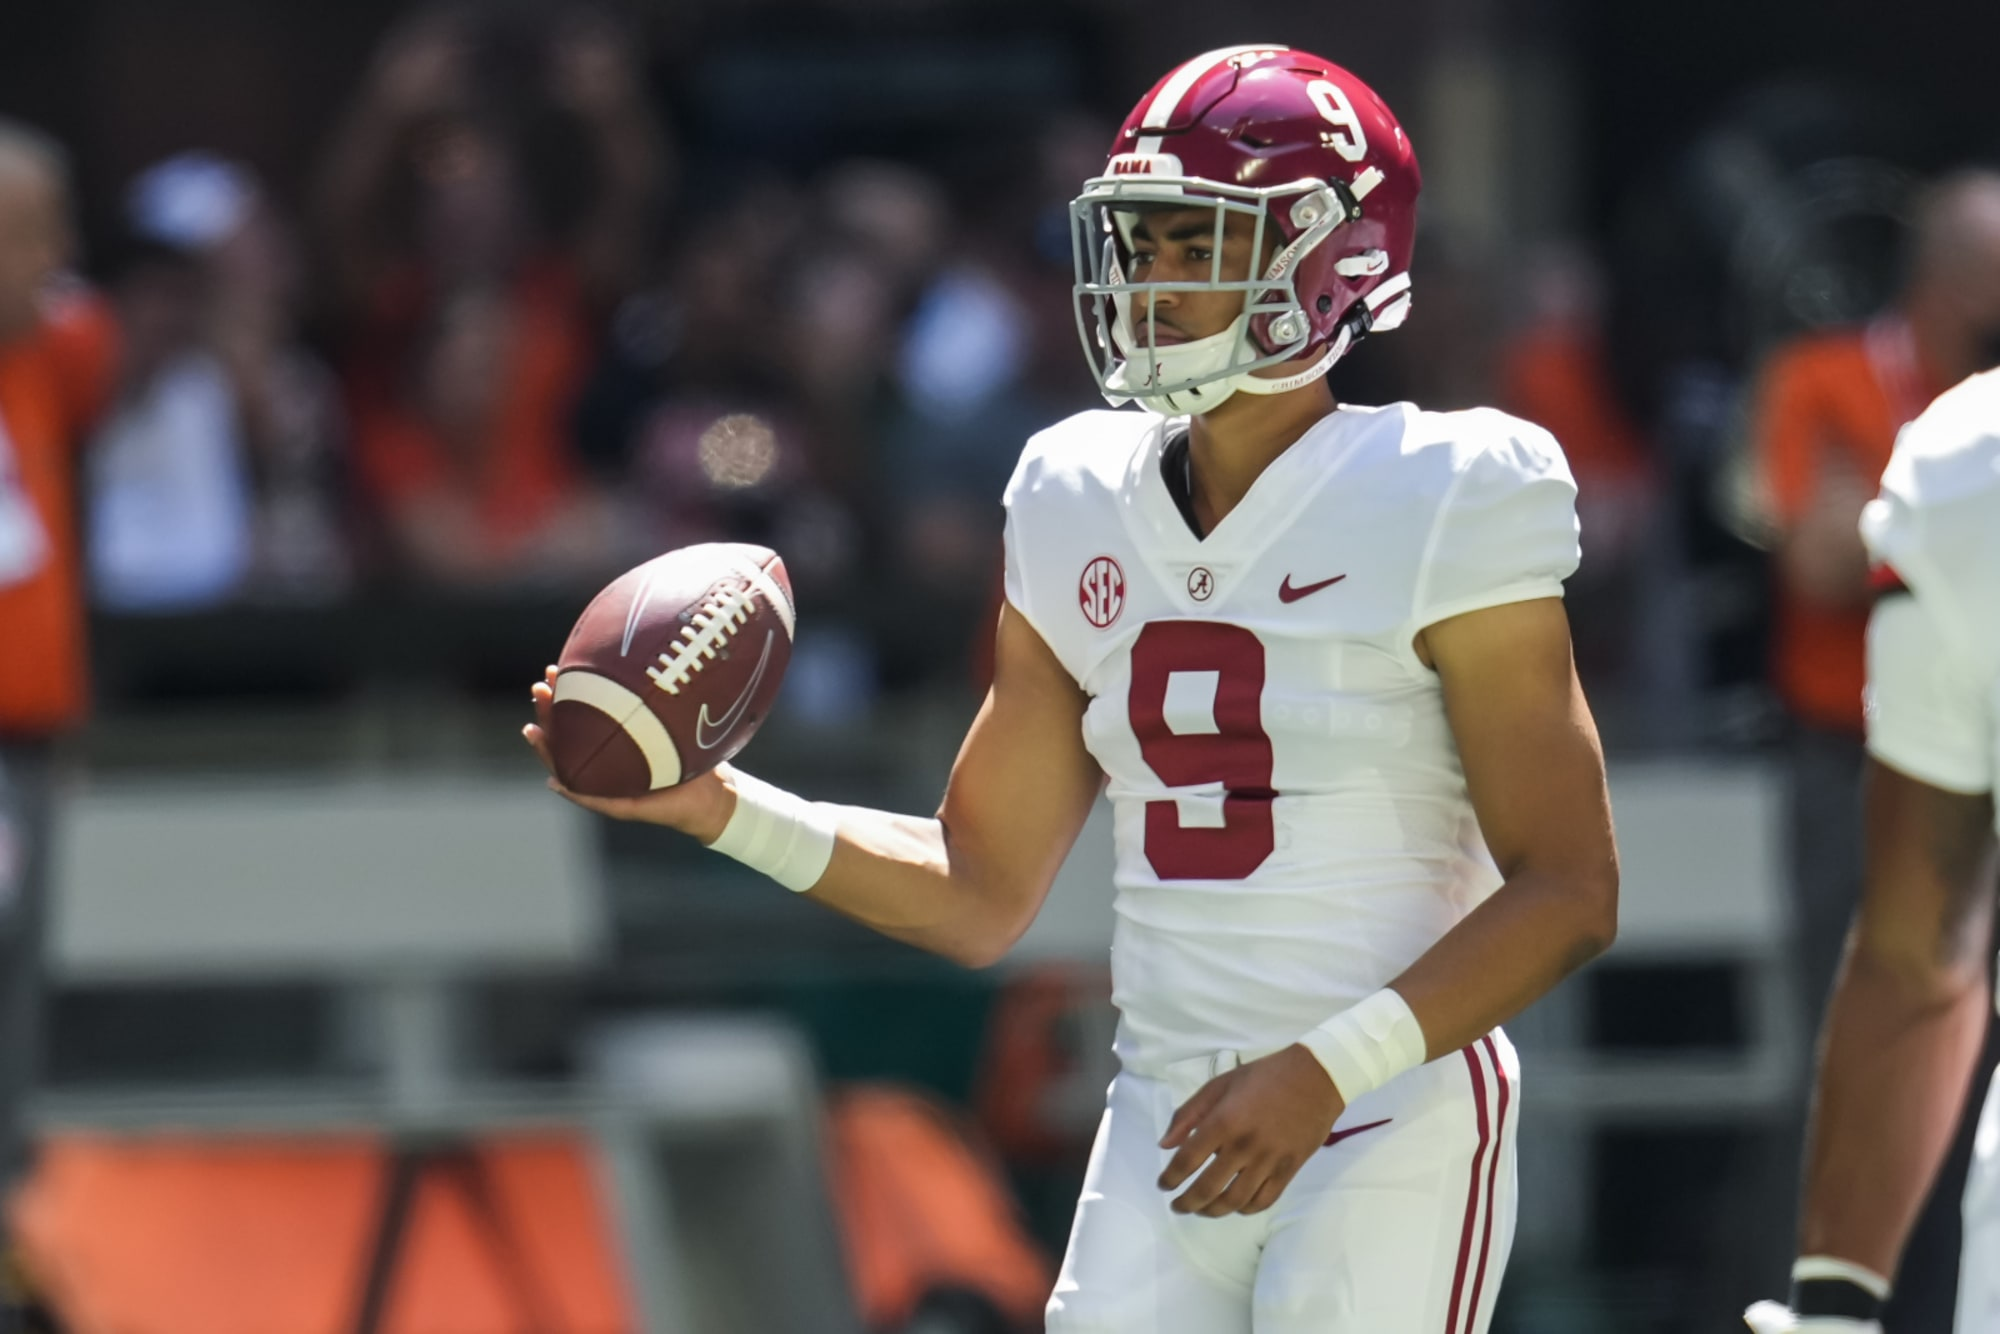 Alabama football: Colin Cowherd makes bold proclamation about Bryce Young - FanSided